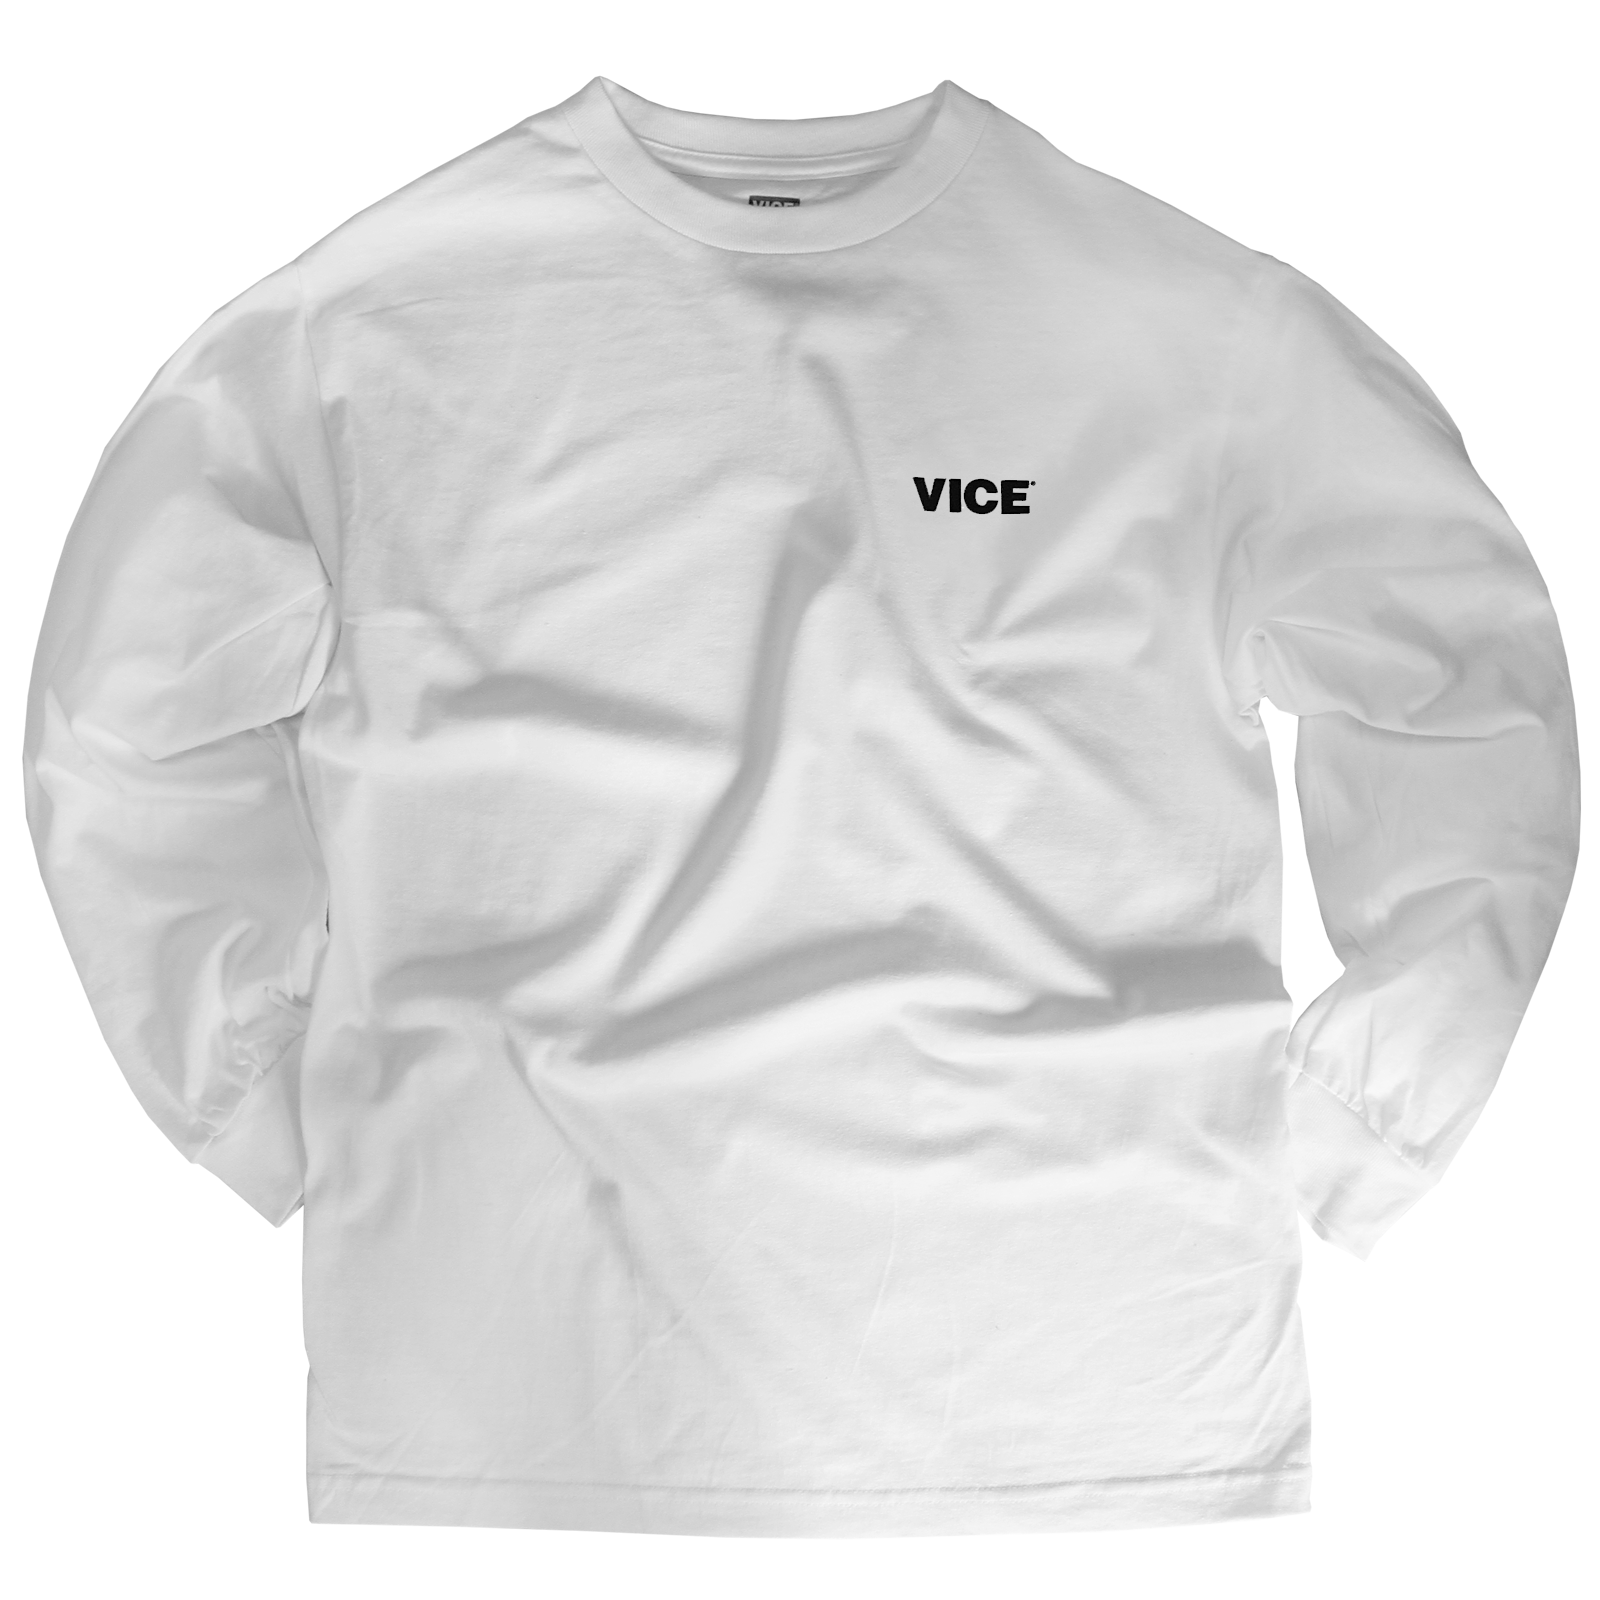 VICE White Long-Sleeve T-Shirt